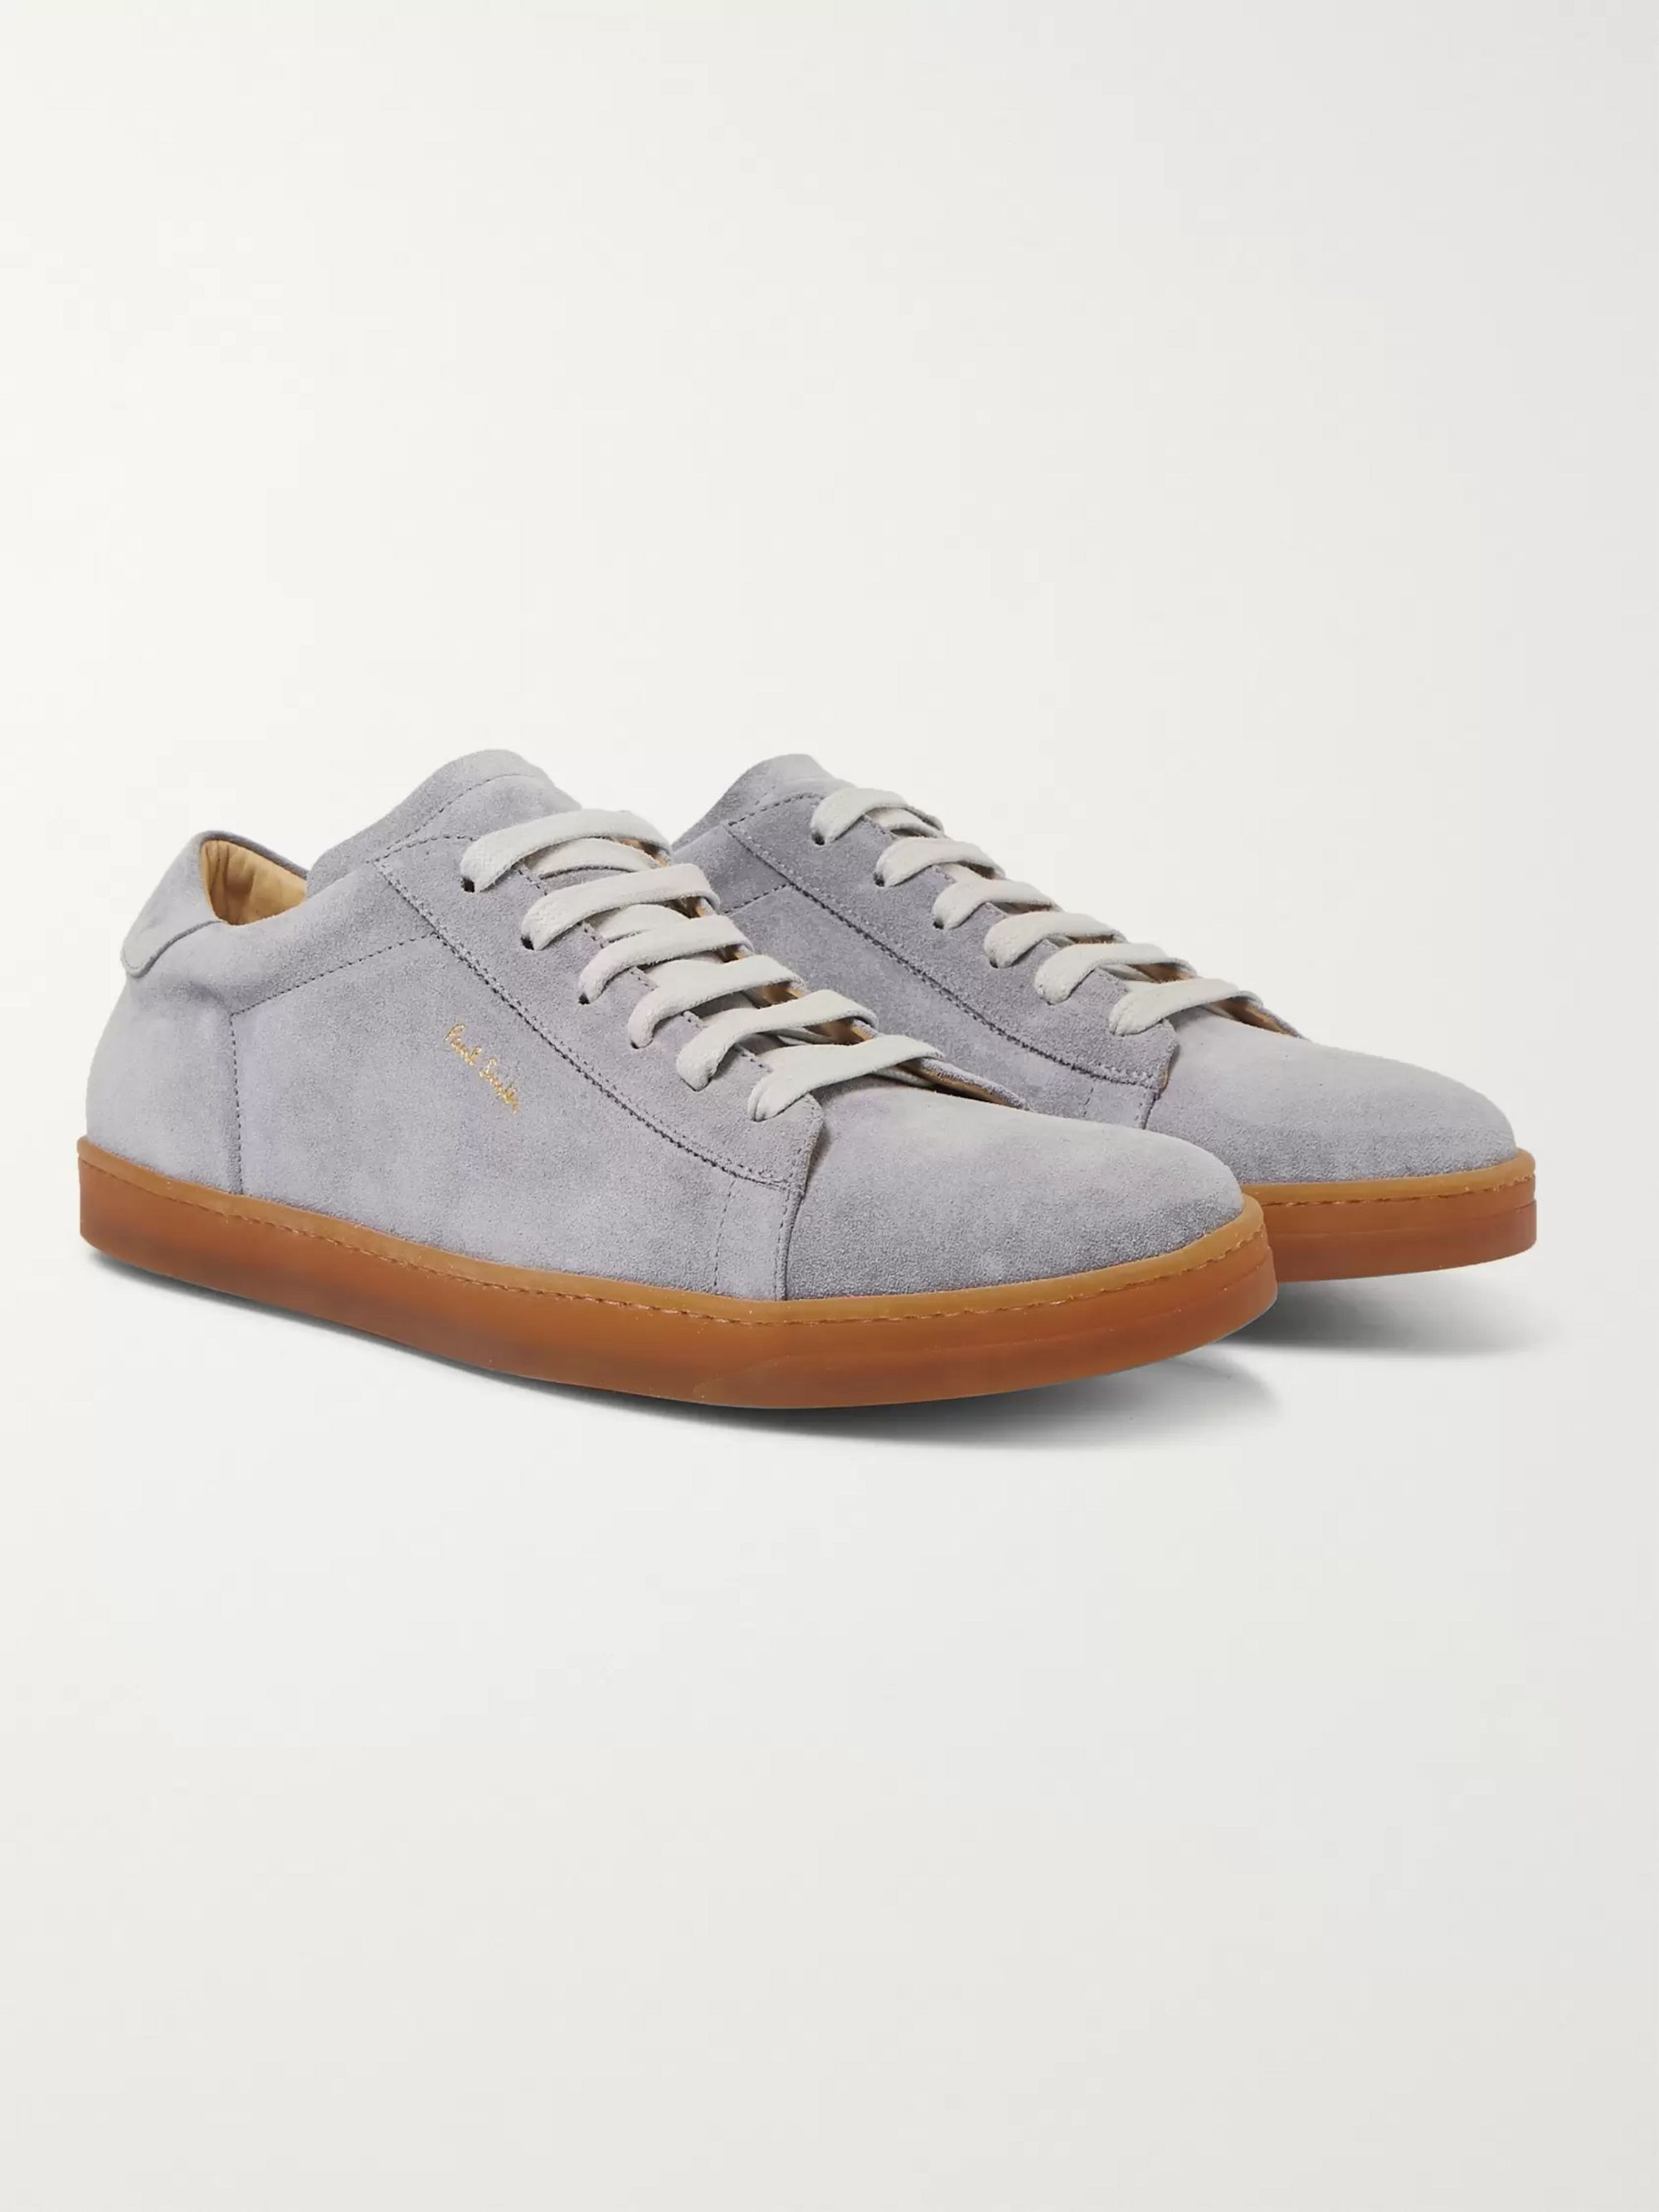 compare price latest trends of 2019 wholesale Huxley Suede Sneakers